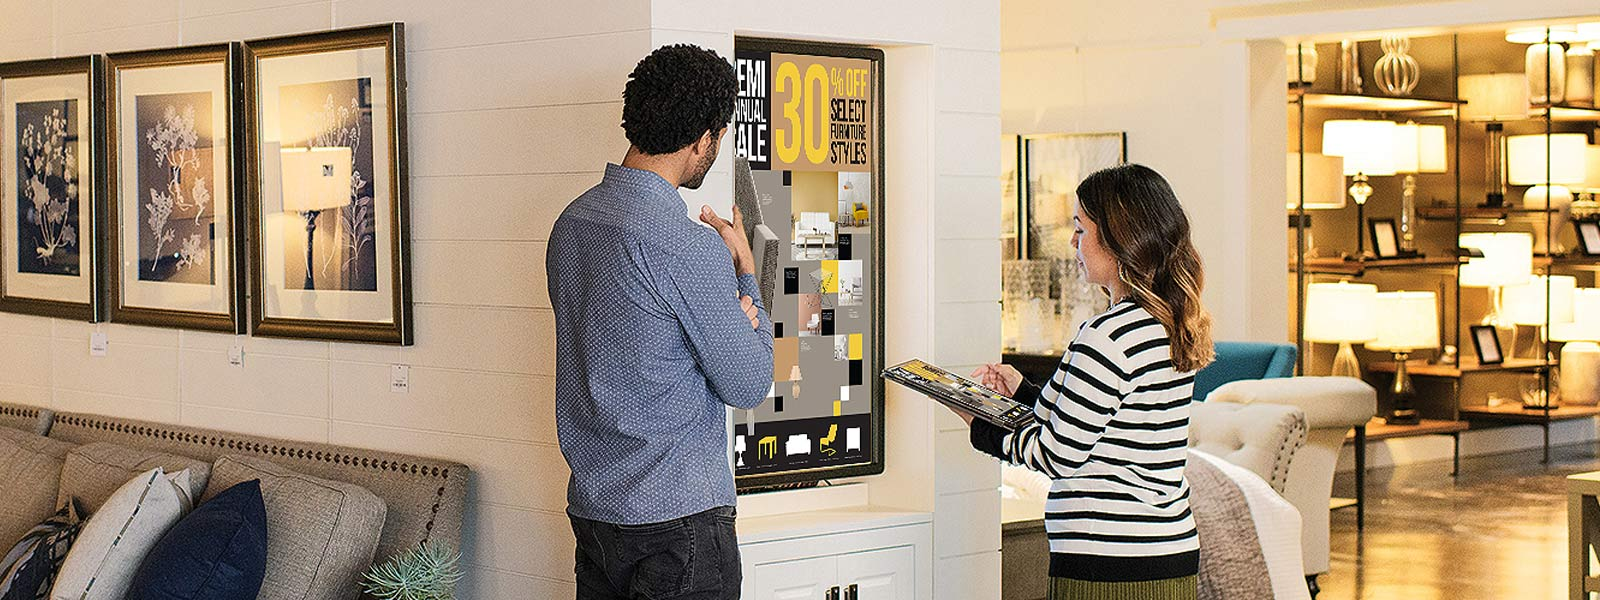 Man and woman review digital signs in retail store